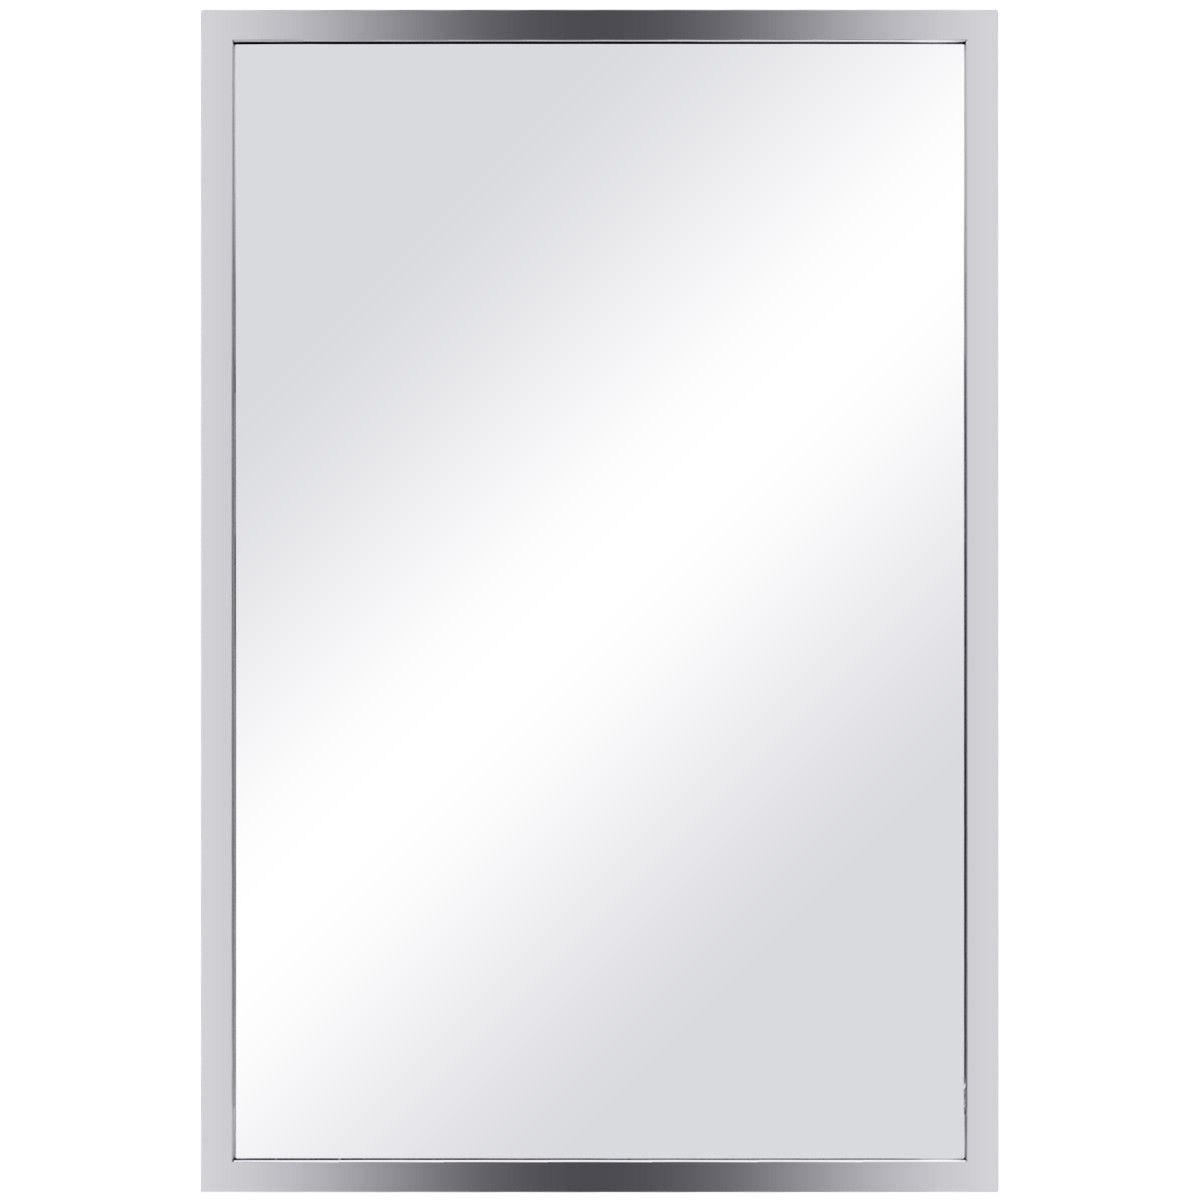 24 X 36 Wall Mirrors For Well Known Costway 24'' X 36'' Large Rectangular Wall Mirror Stainless Steel Frame  Floating Glass (View 4 of 20)